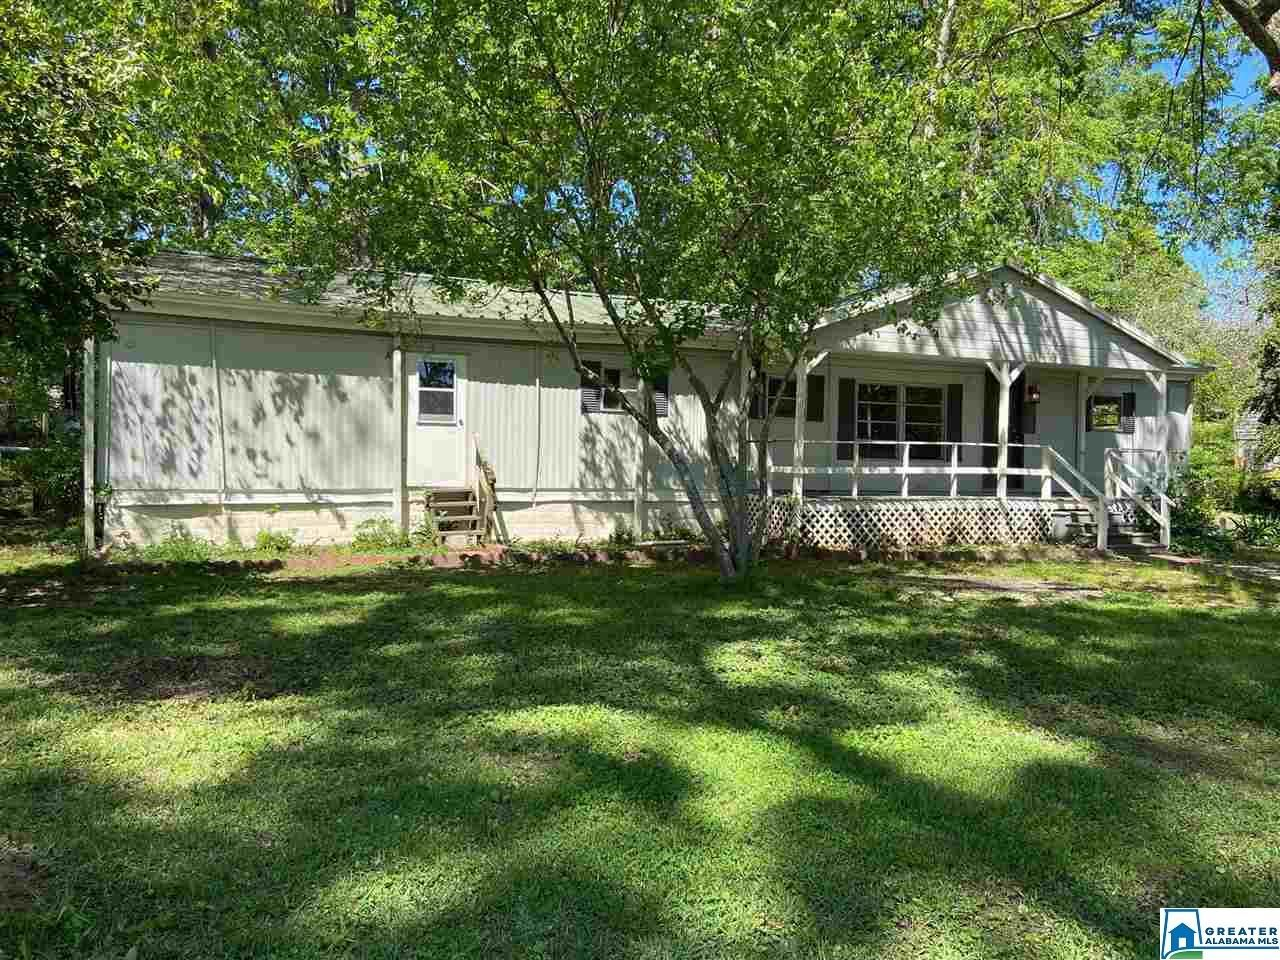 185 MINNESOTA AVE, Thorsby, AL 35171 - MLS#: 880716